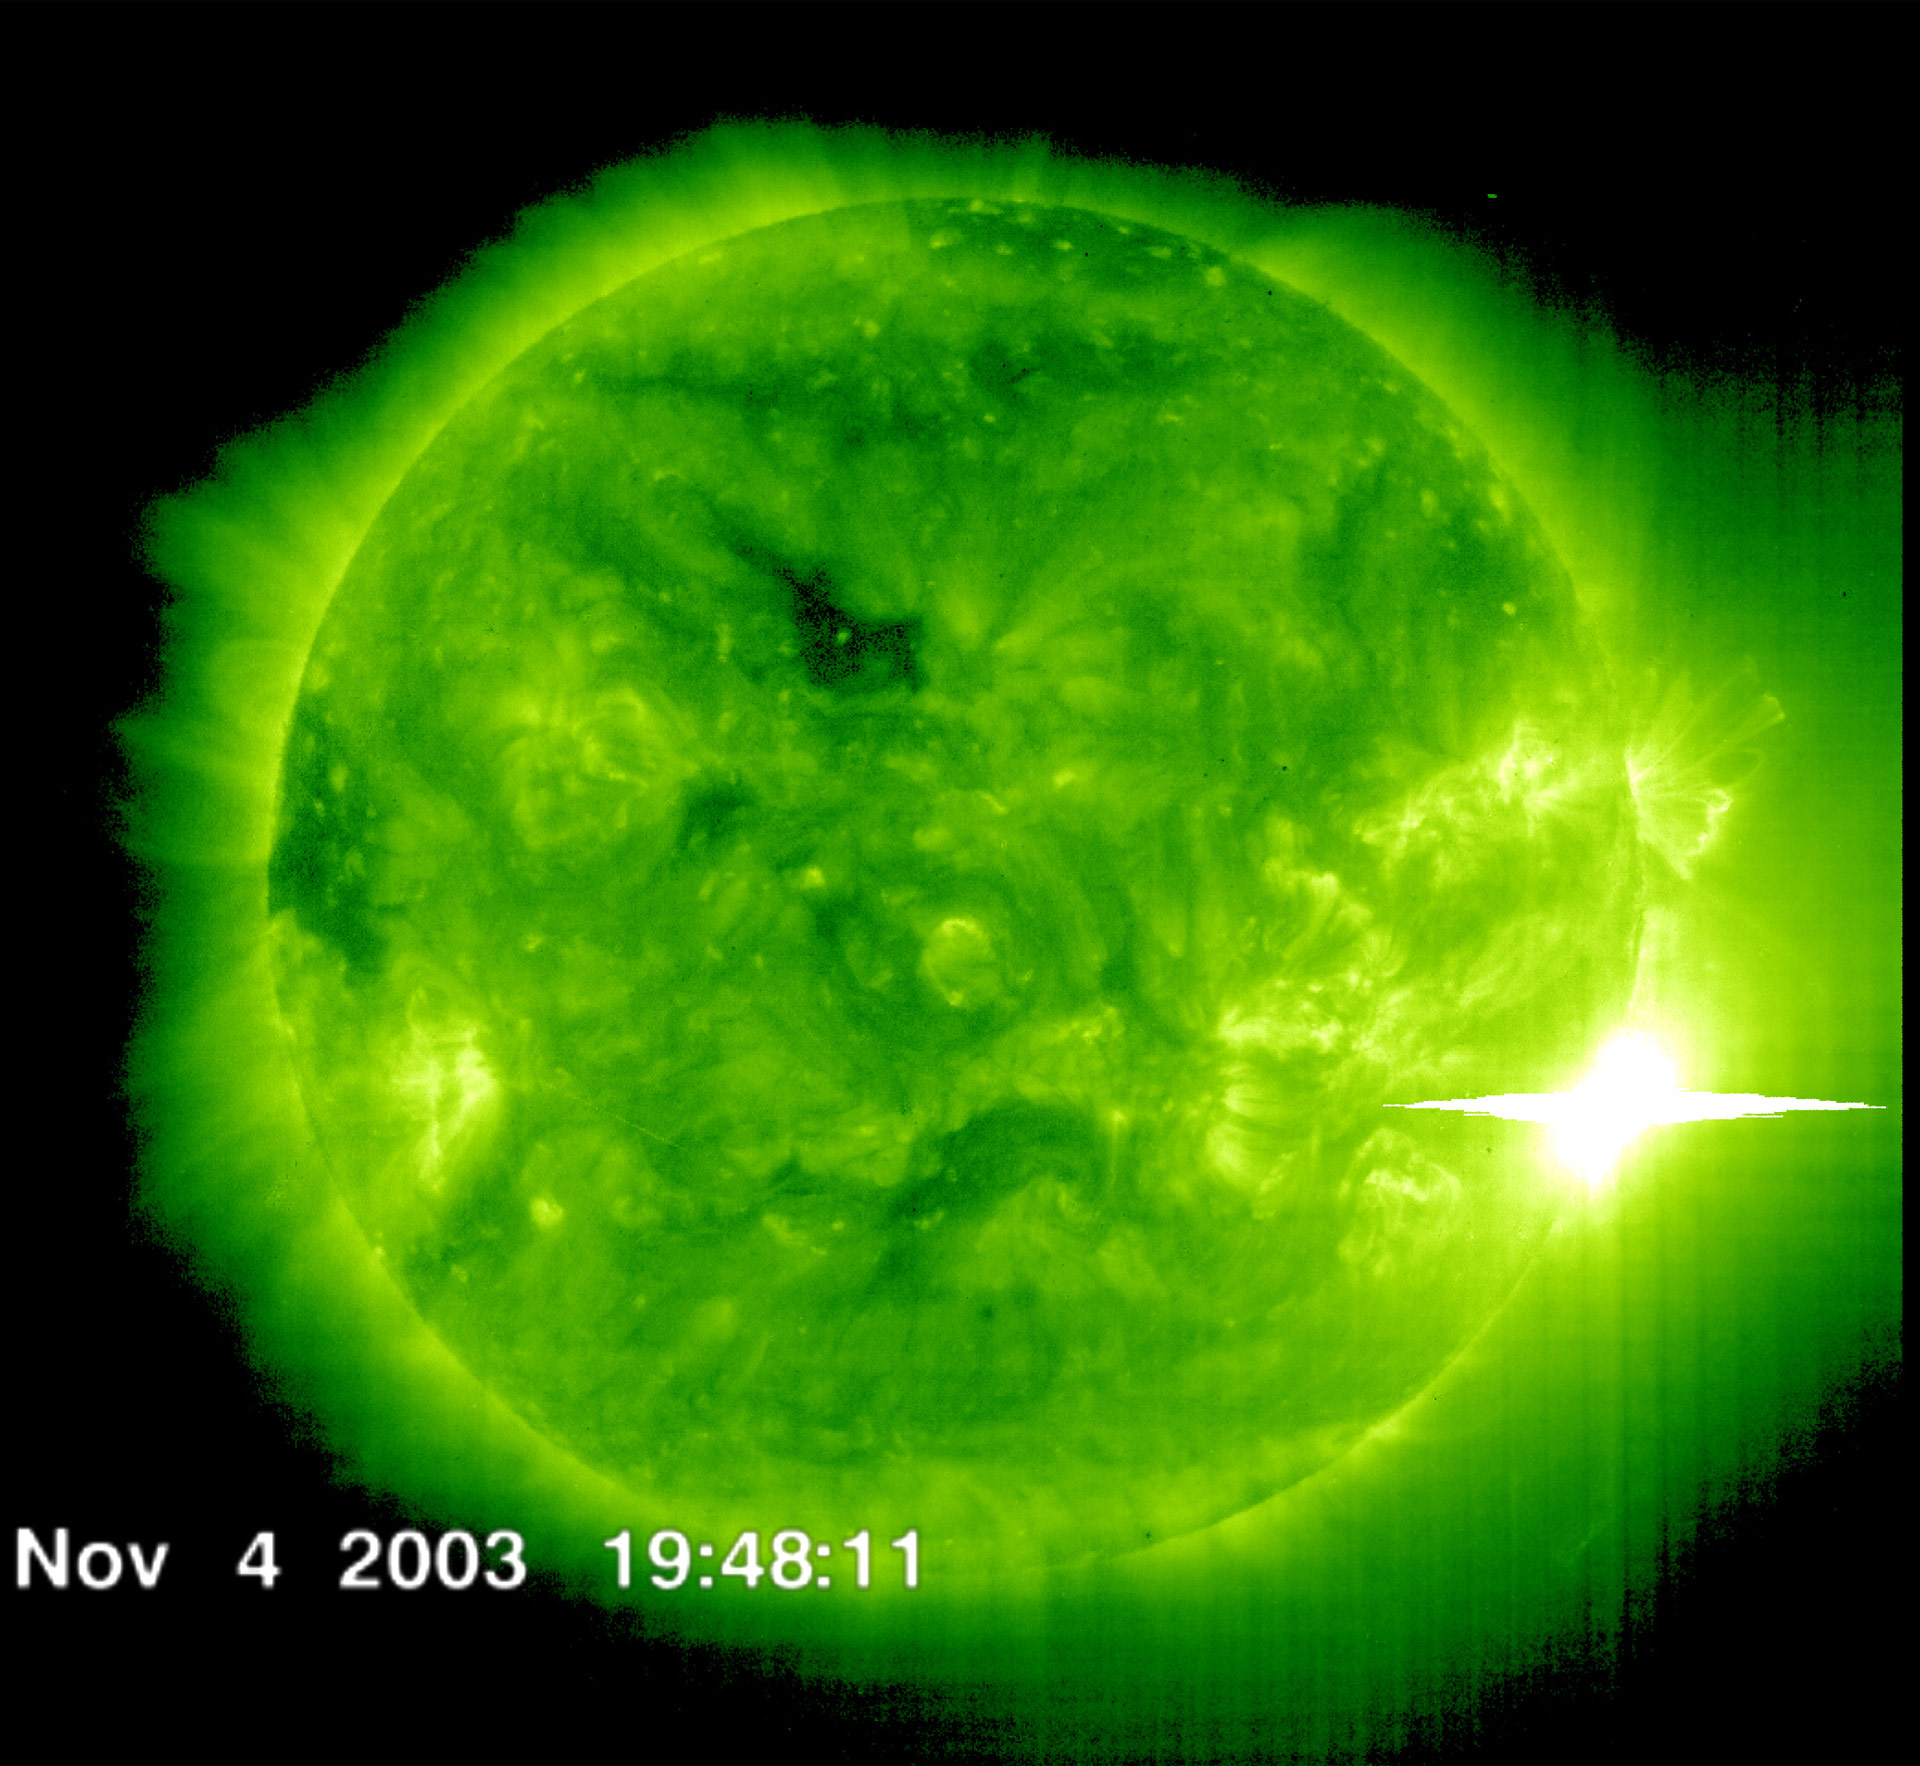 NASA Looks at the Impacts of Strong Solar Flares